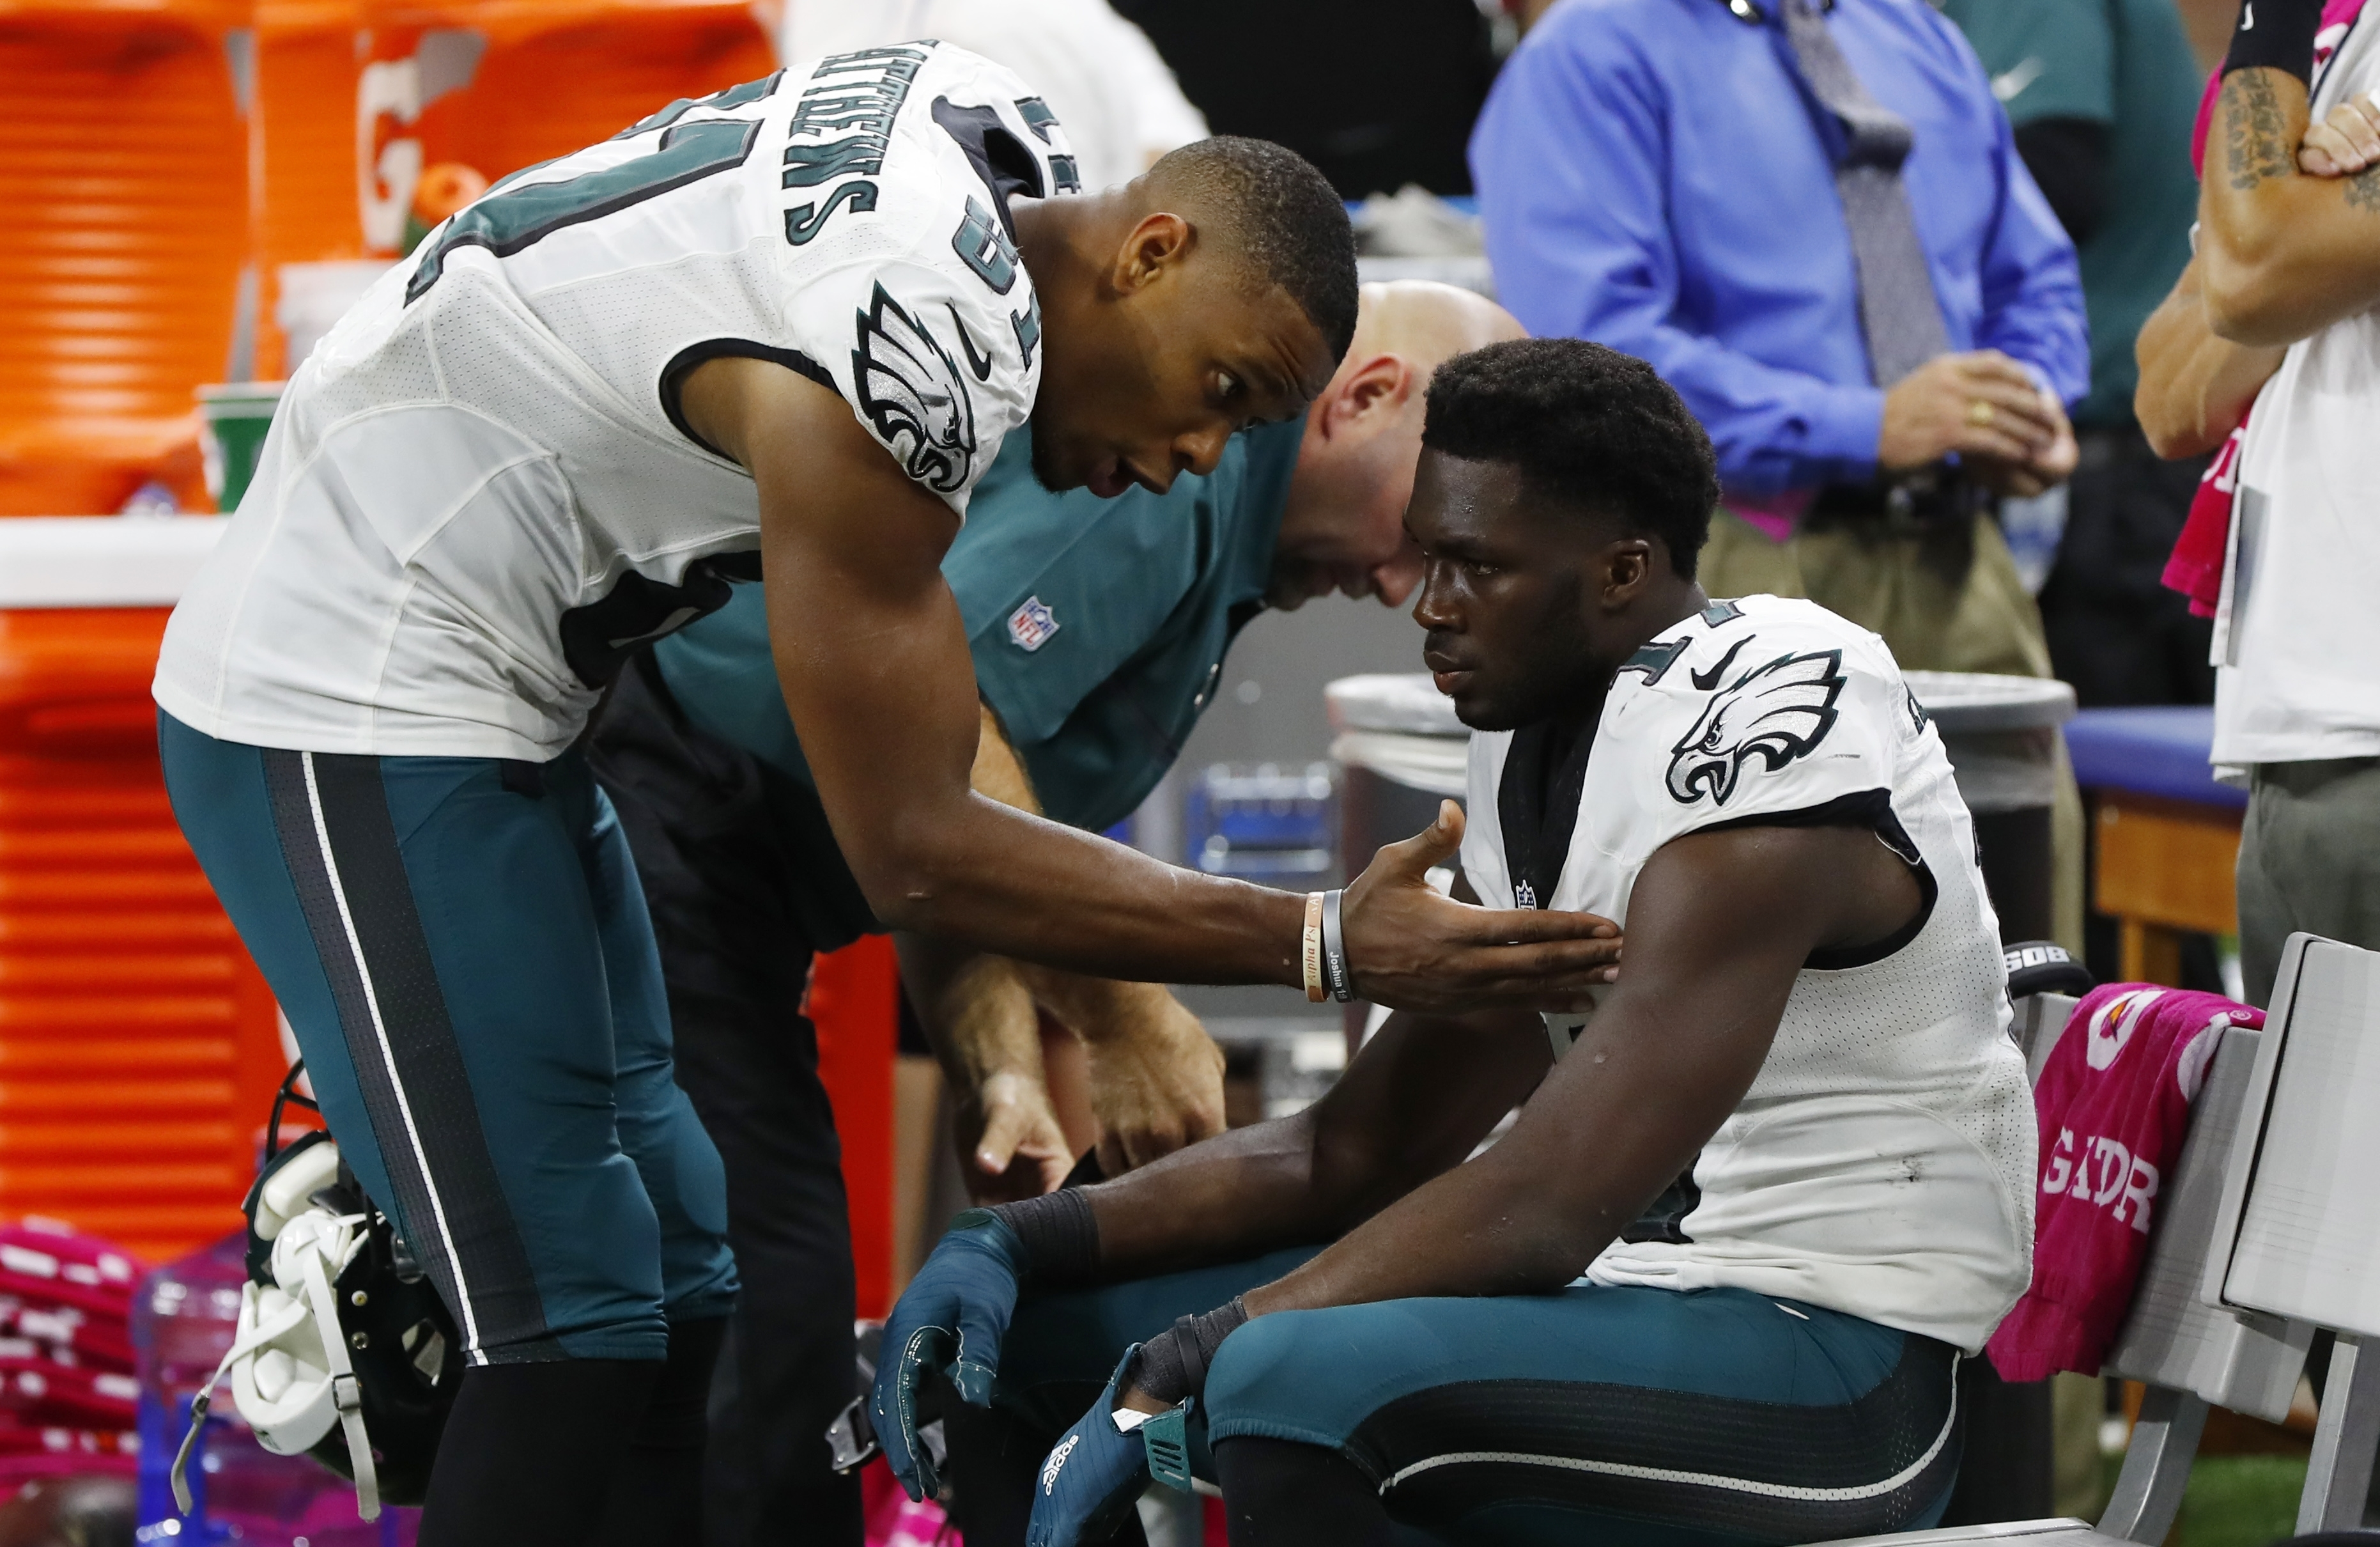 Philadelphia Eagles wide receiver Nelson Agholor, right, is consoled by teammate Philadelphia Eagles wide receiver Jordan Matthews (81) after an NFL football game, Sunday, Oct. 9, 2016, in Detroit. Lions cornerback Darius Slay intercepted a pass intended